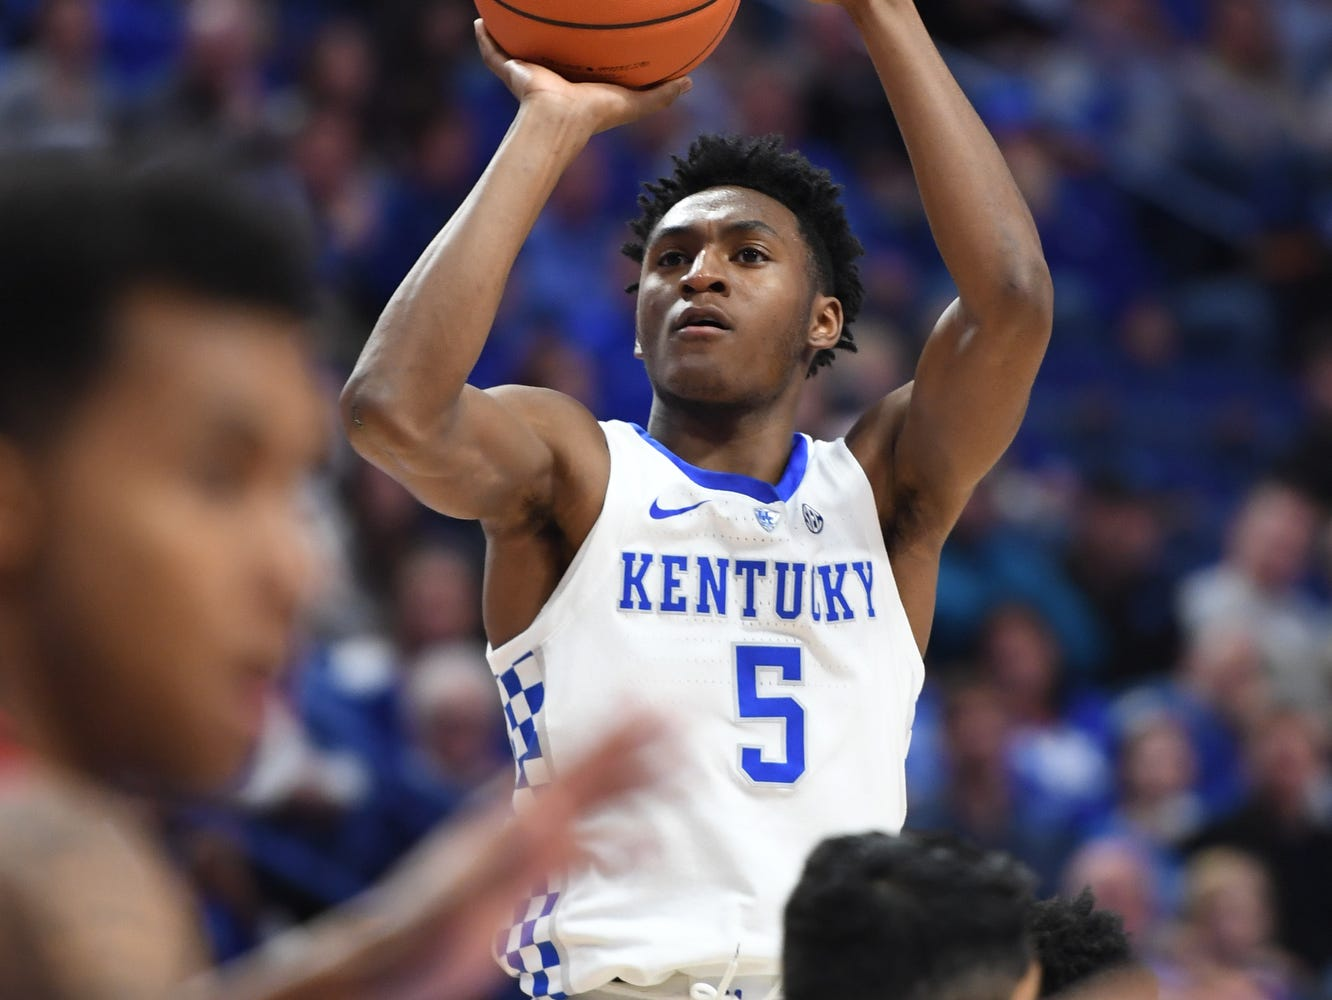 UK G Immanuel Quickley shoots during the University of Kentucky mens basketball game against VMI at Rupp Arena in Lexington, Kentucky on Sunday, November 18, 2018.